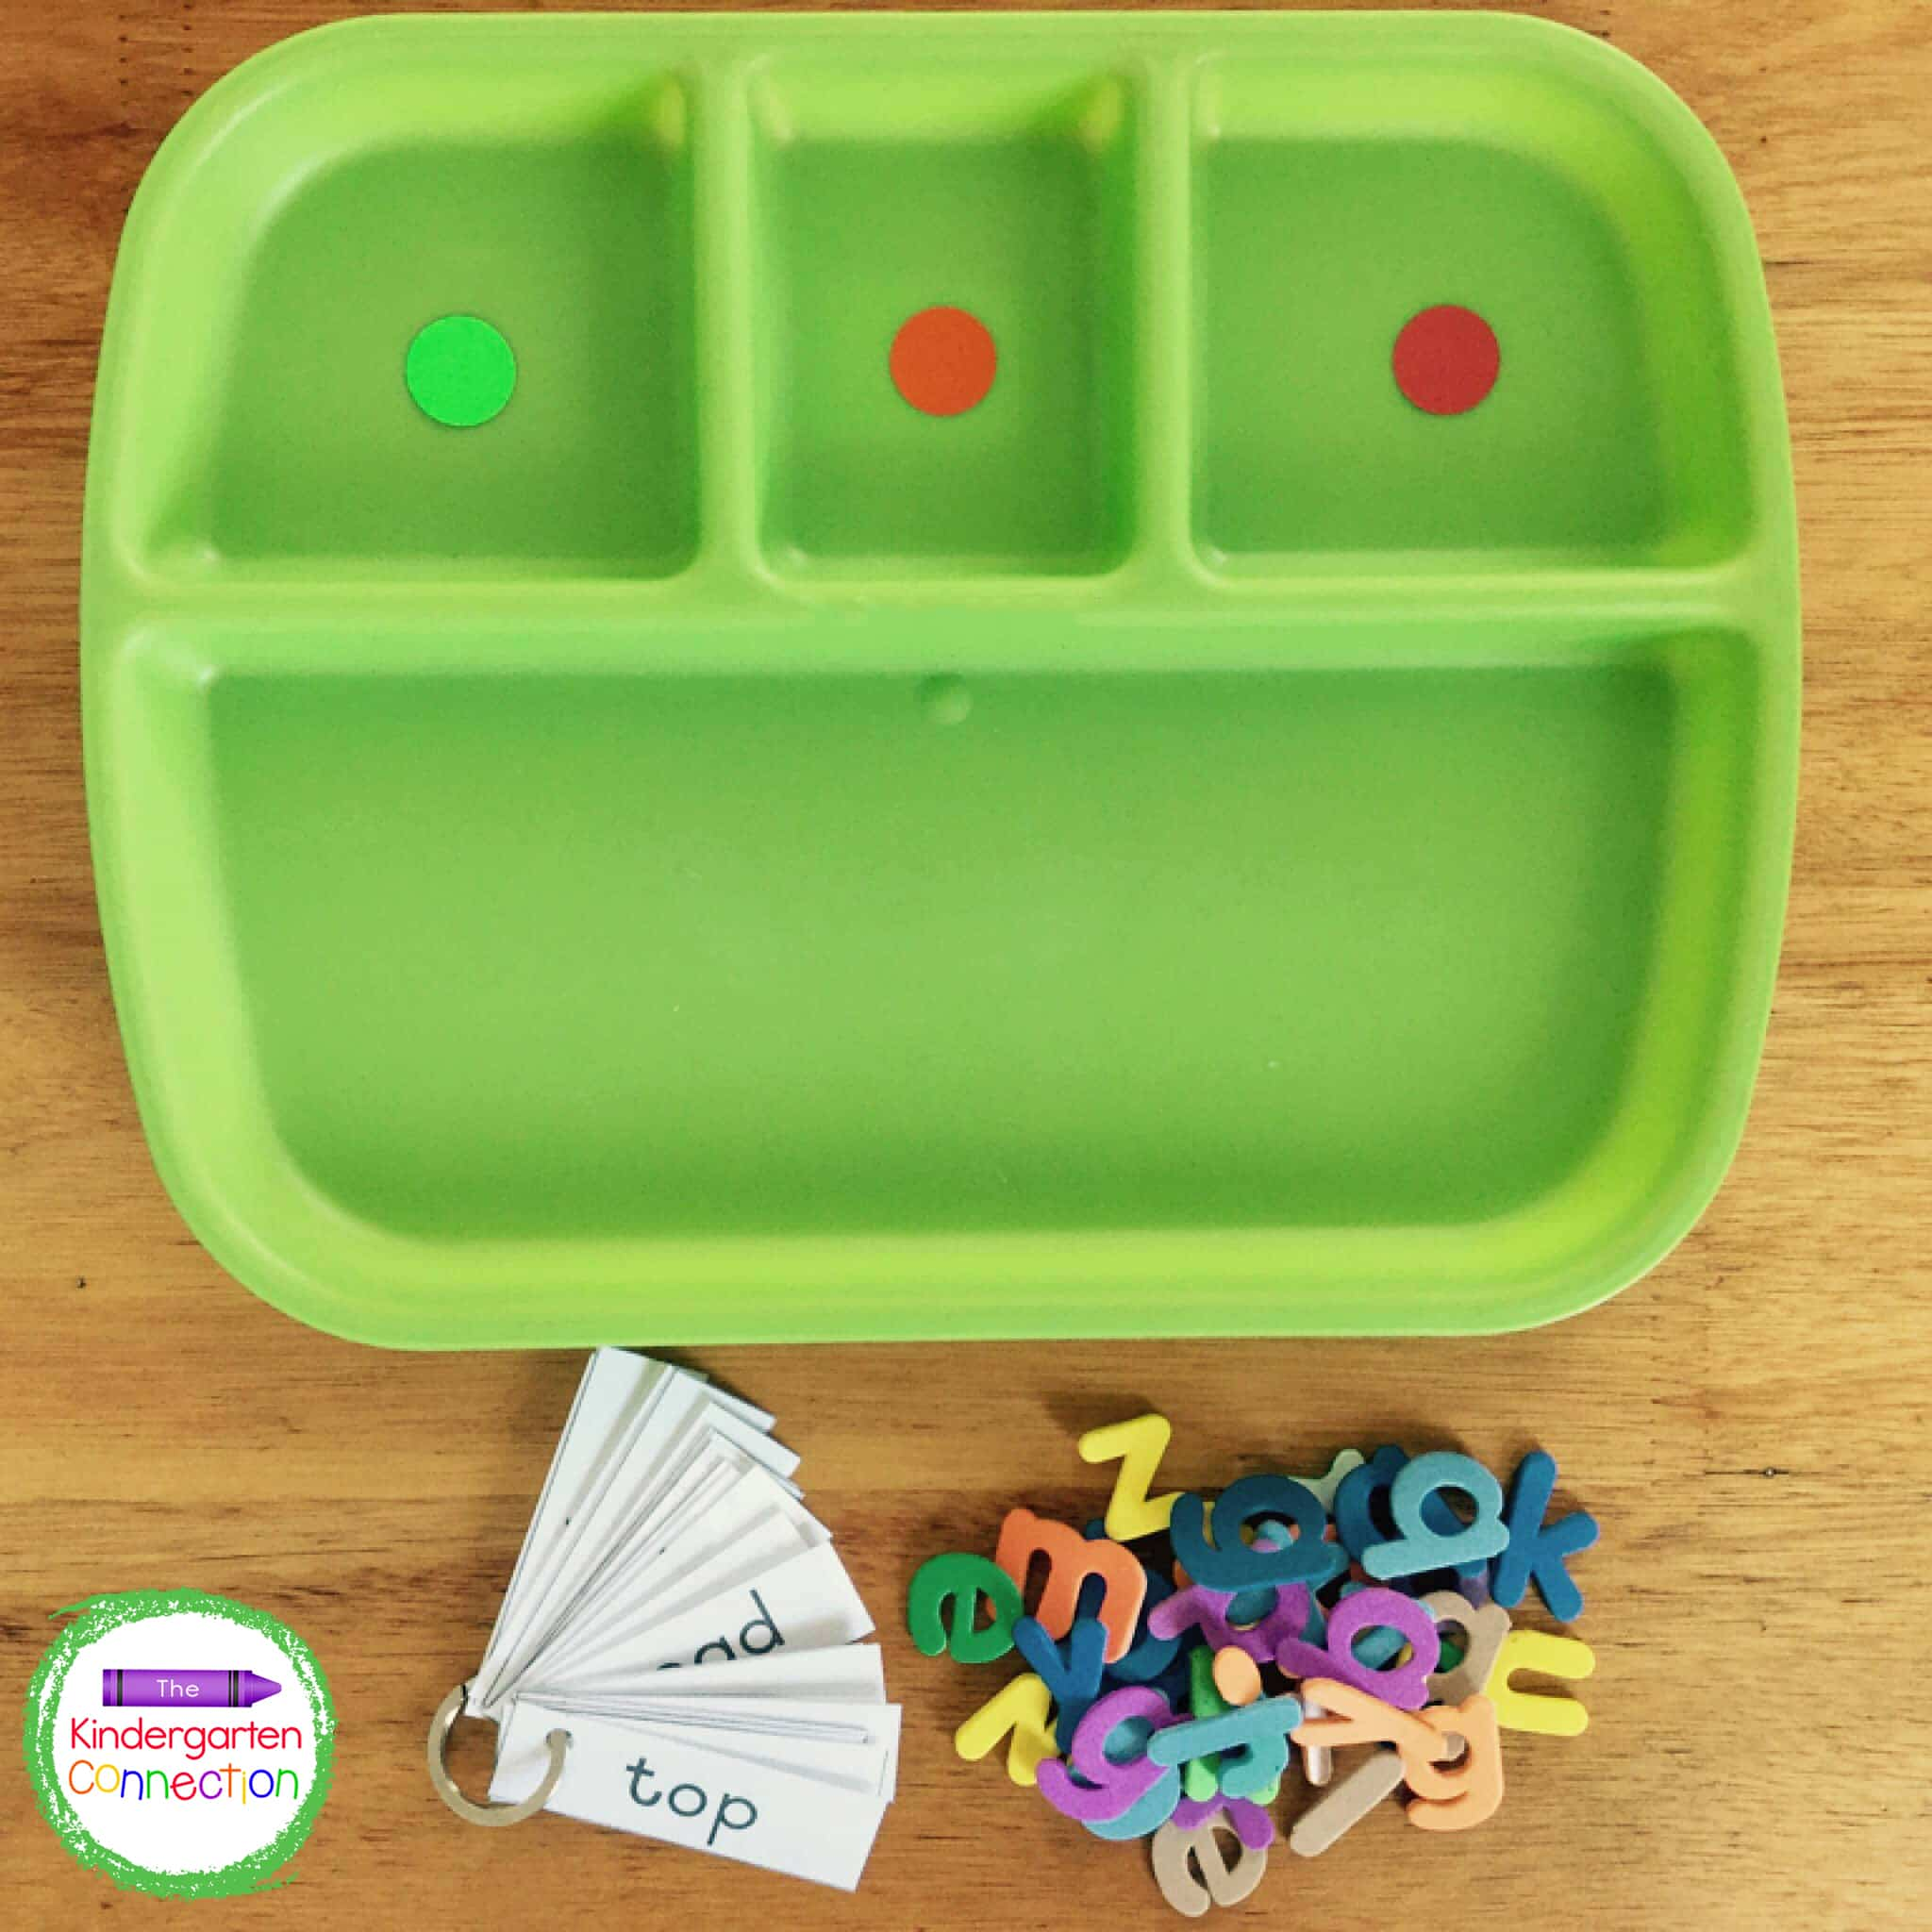 Grab some flashcards, a tray, and letter manipulatives for a simple hands-on CVC word activity.